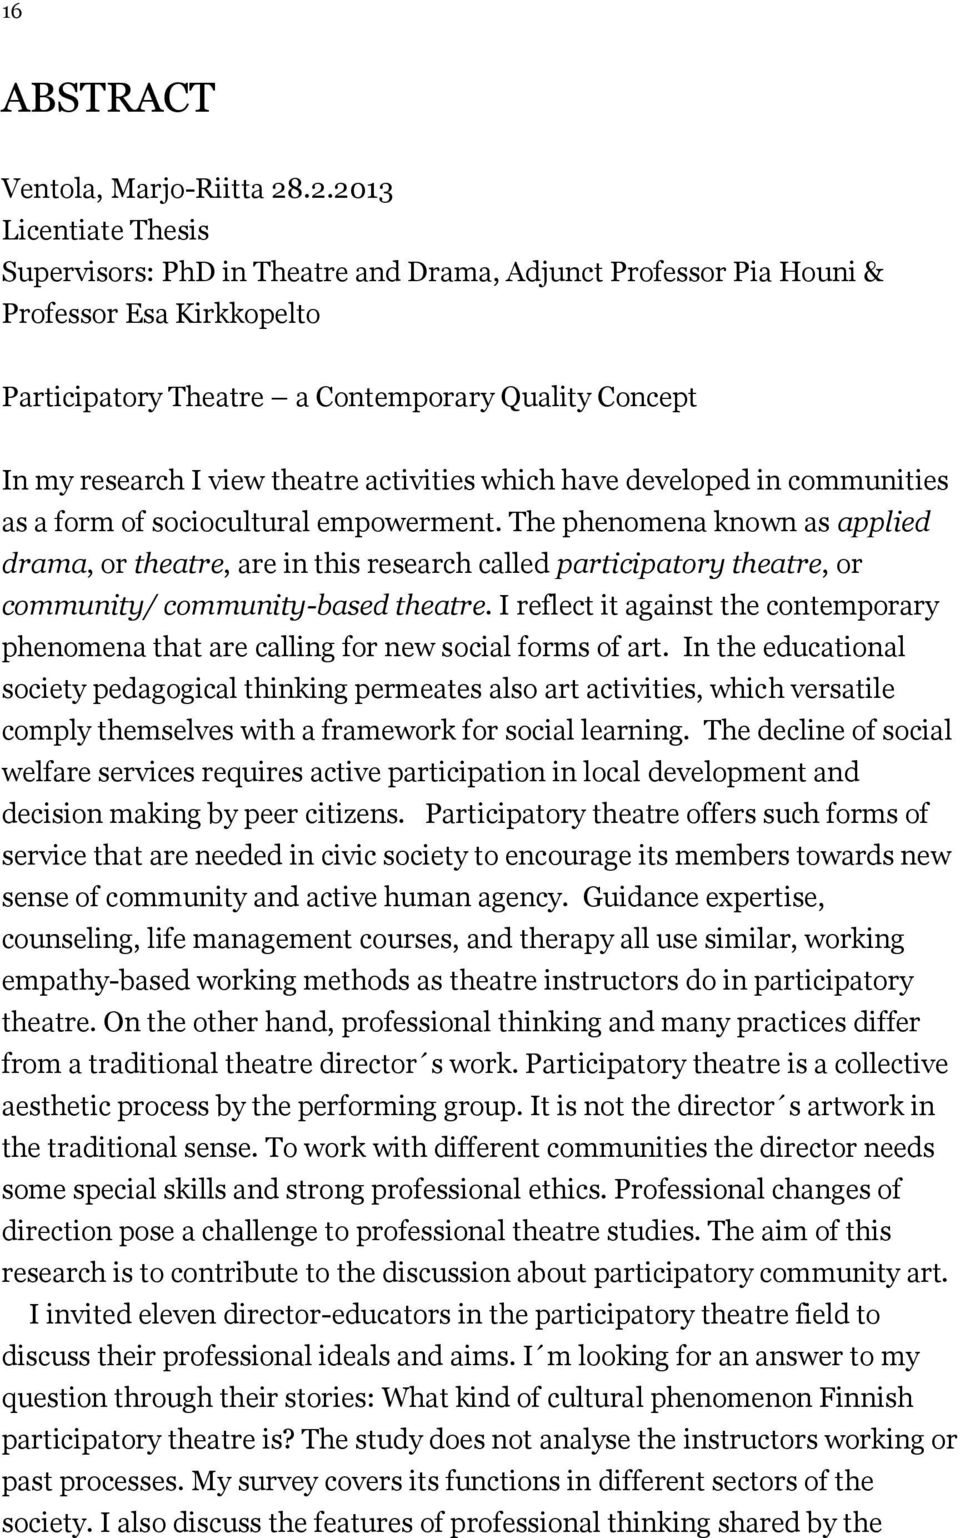 theatre activities which have developed in communities as a form of sociocultural empowerment.